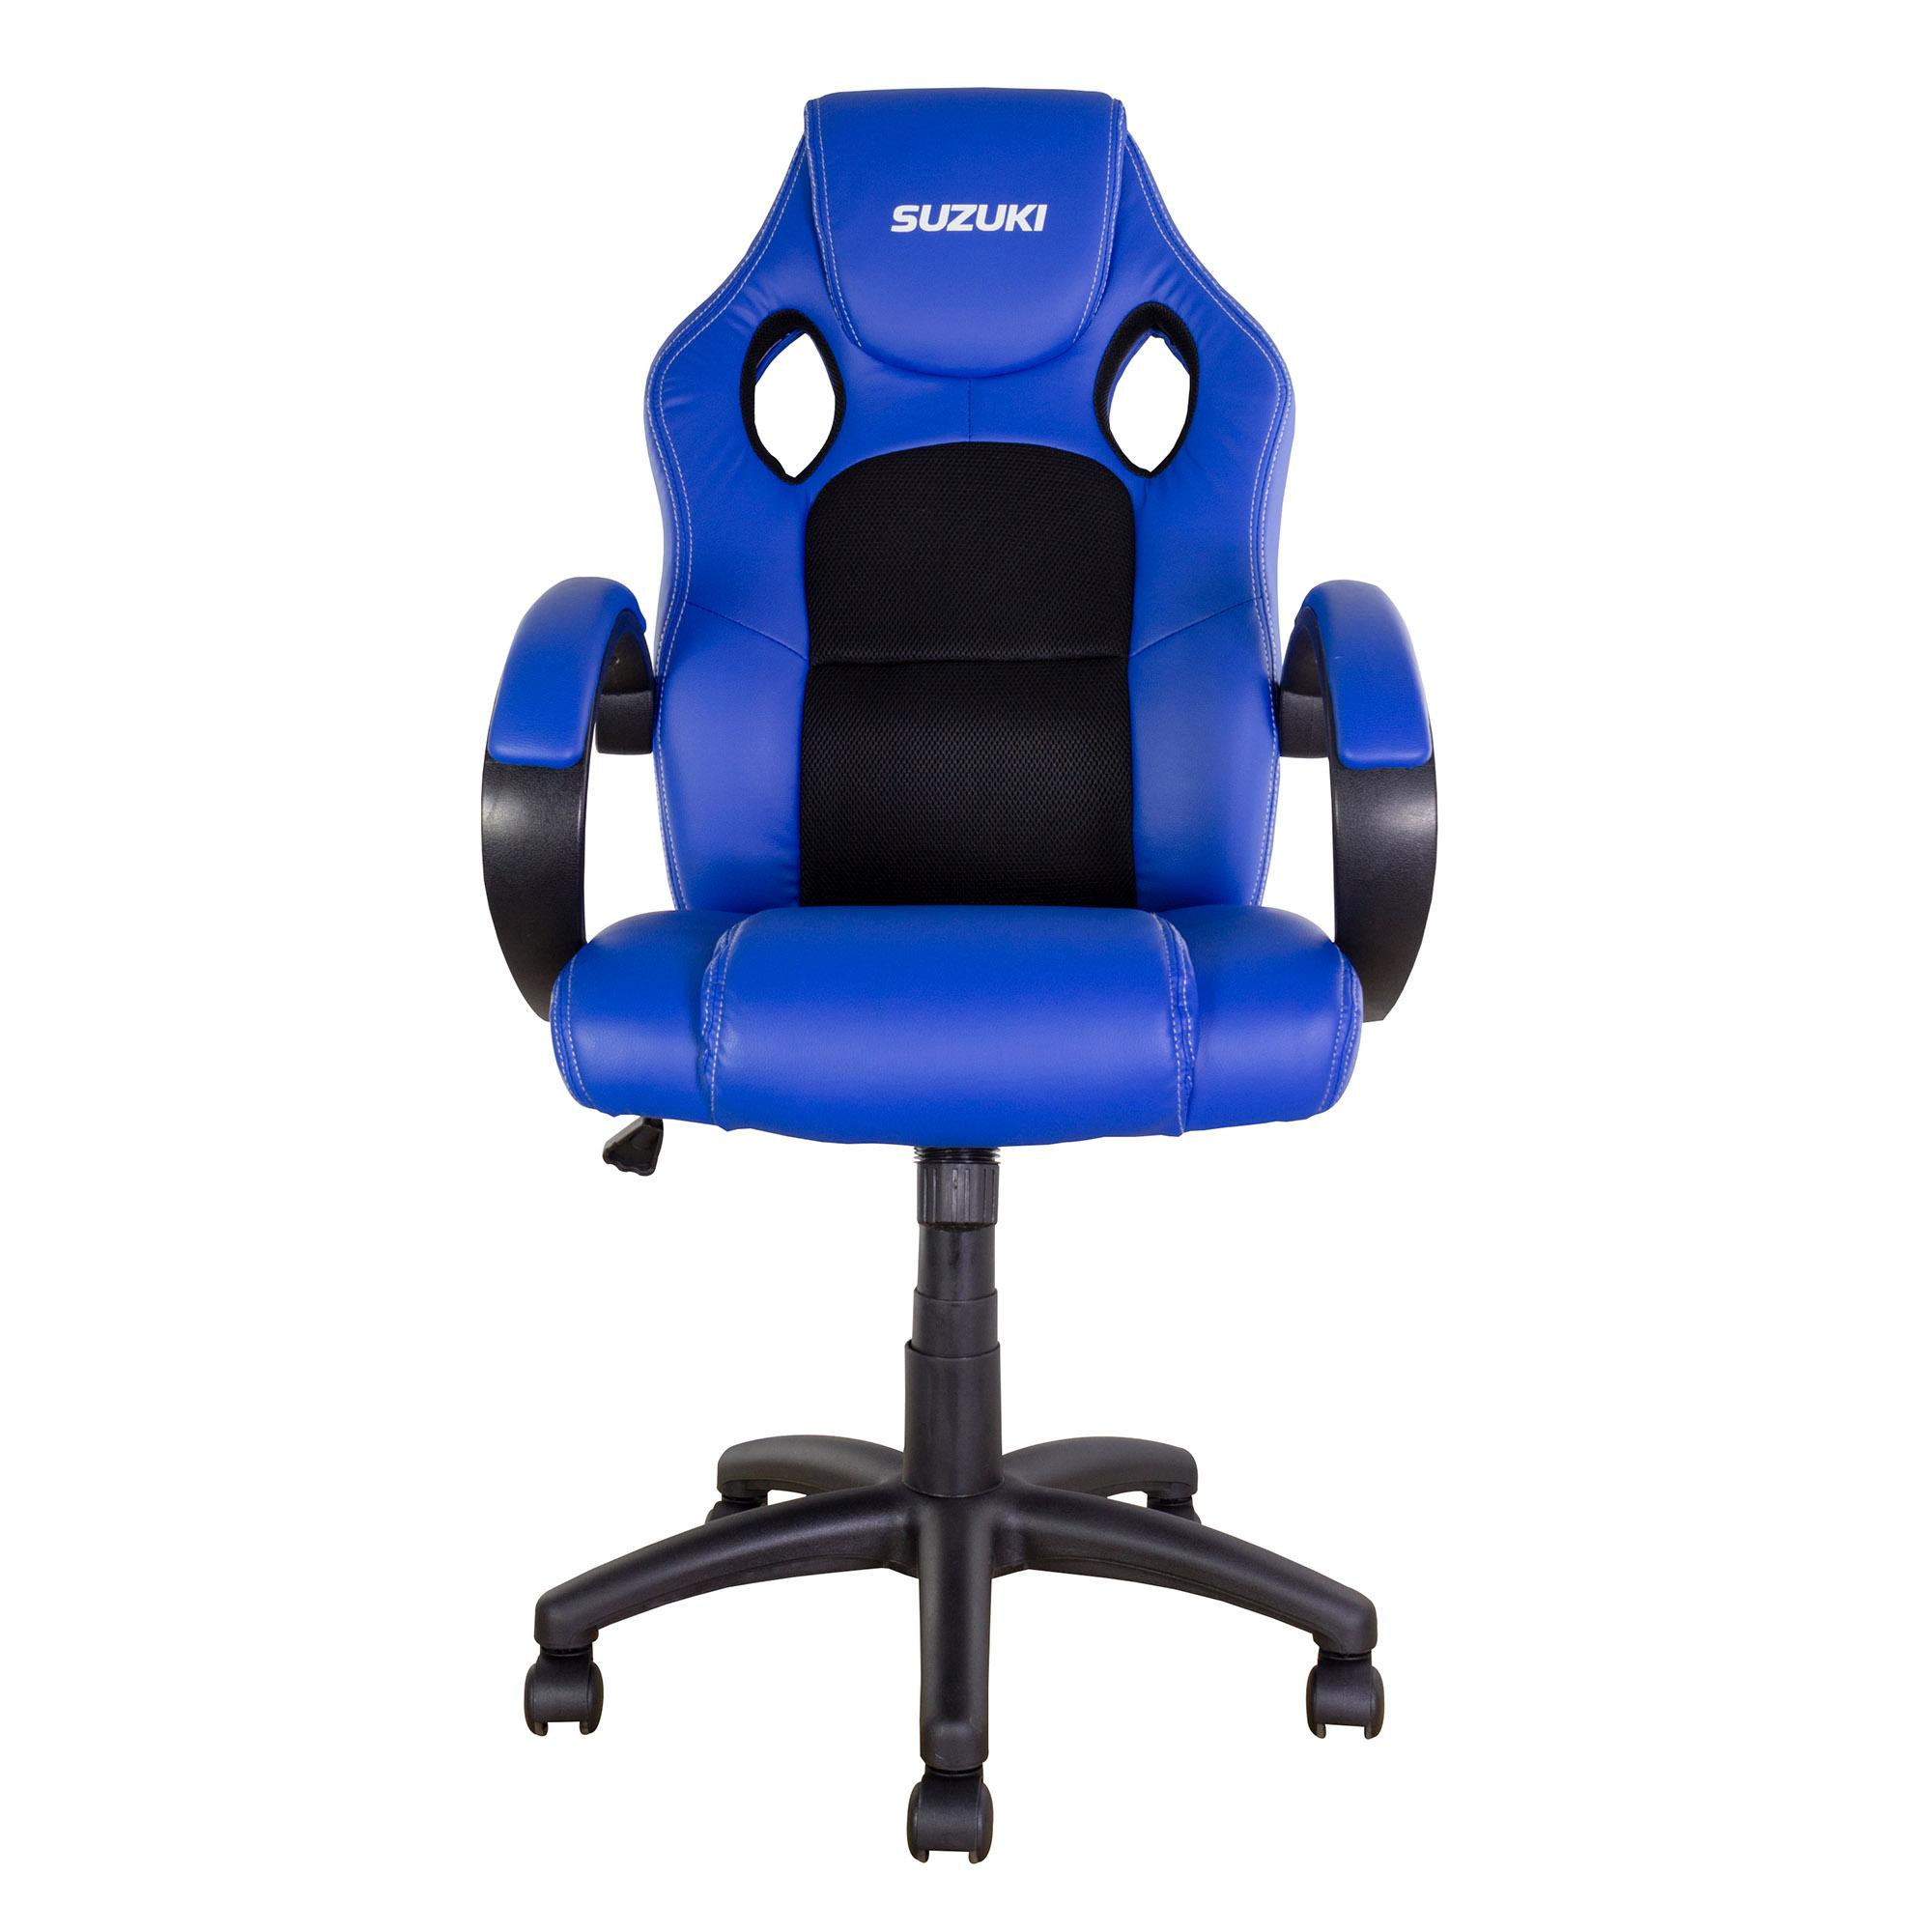 RIDER CHAIR - Suzuki Blue with Black trim